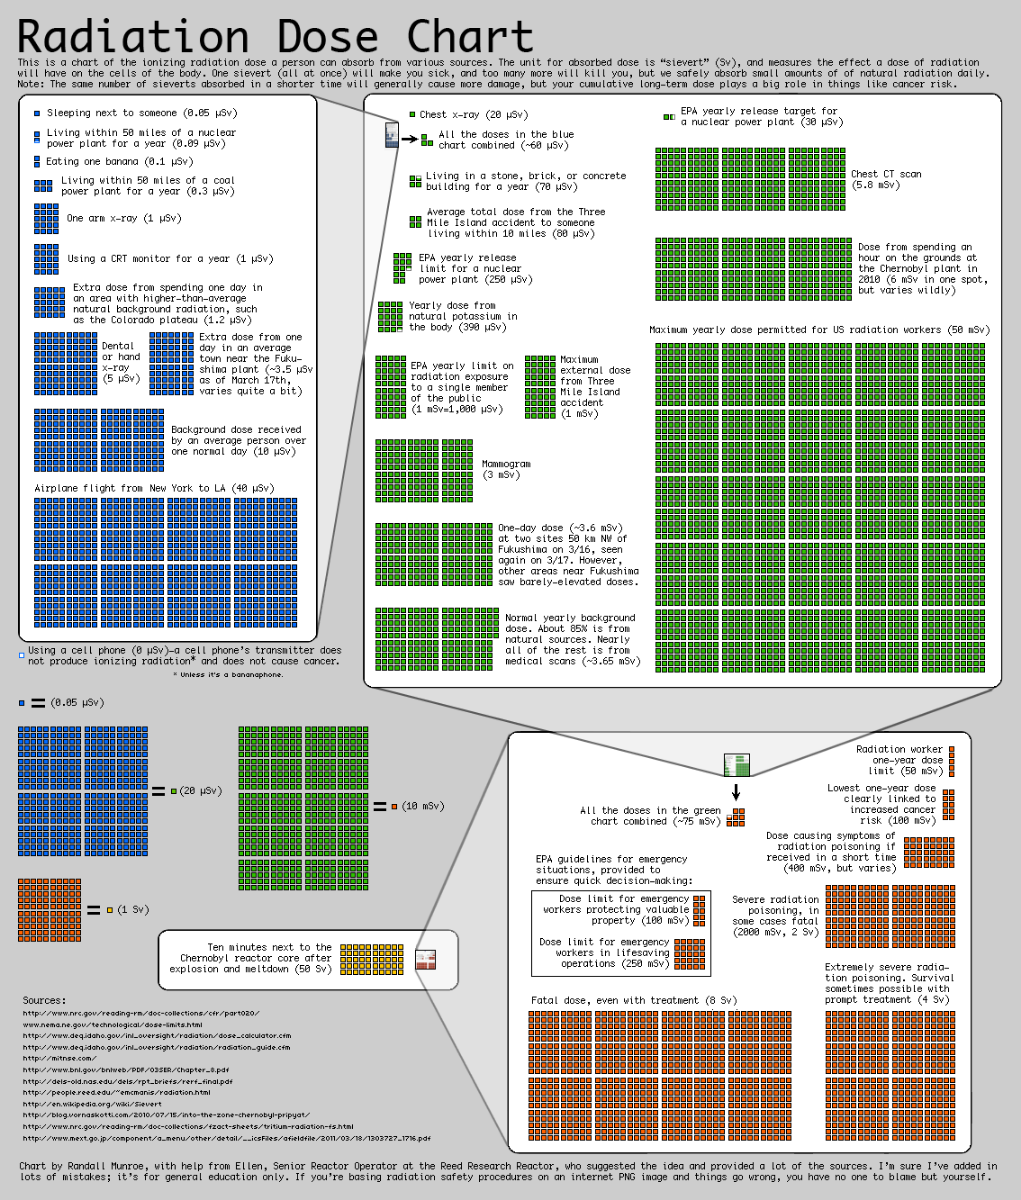 Radiation dose and health effects infographic